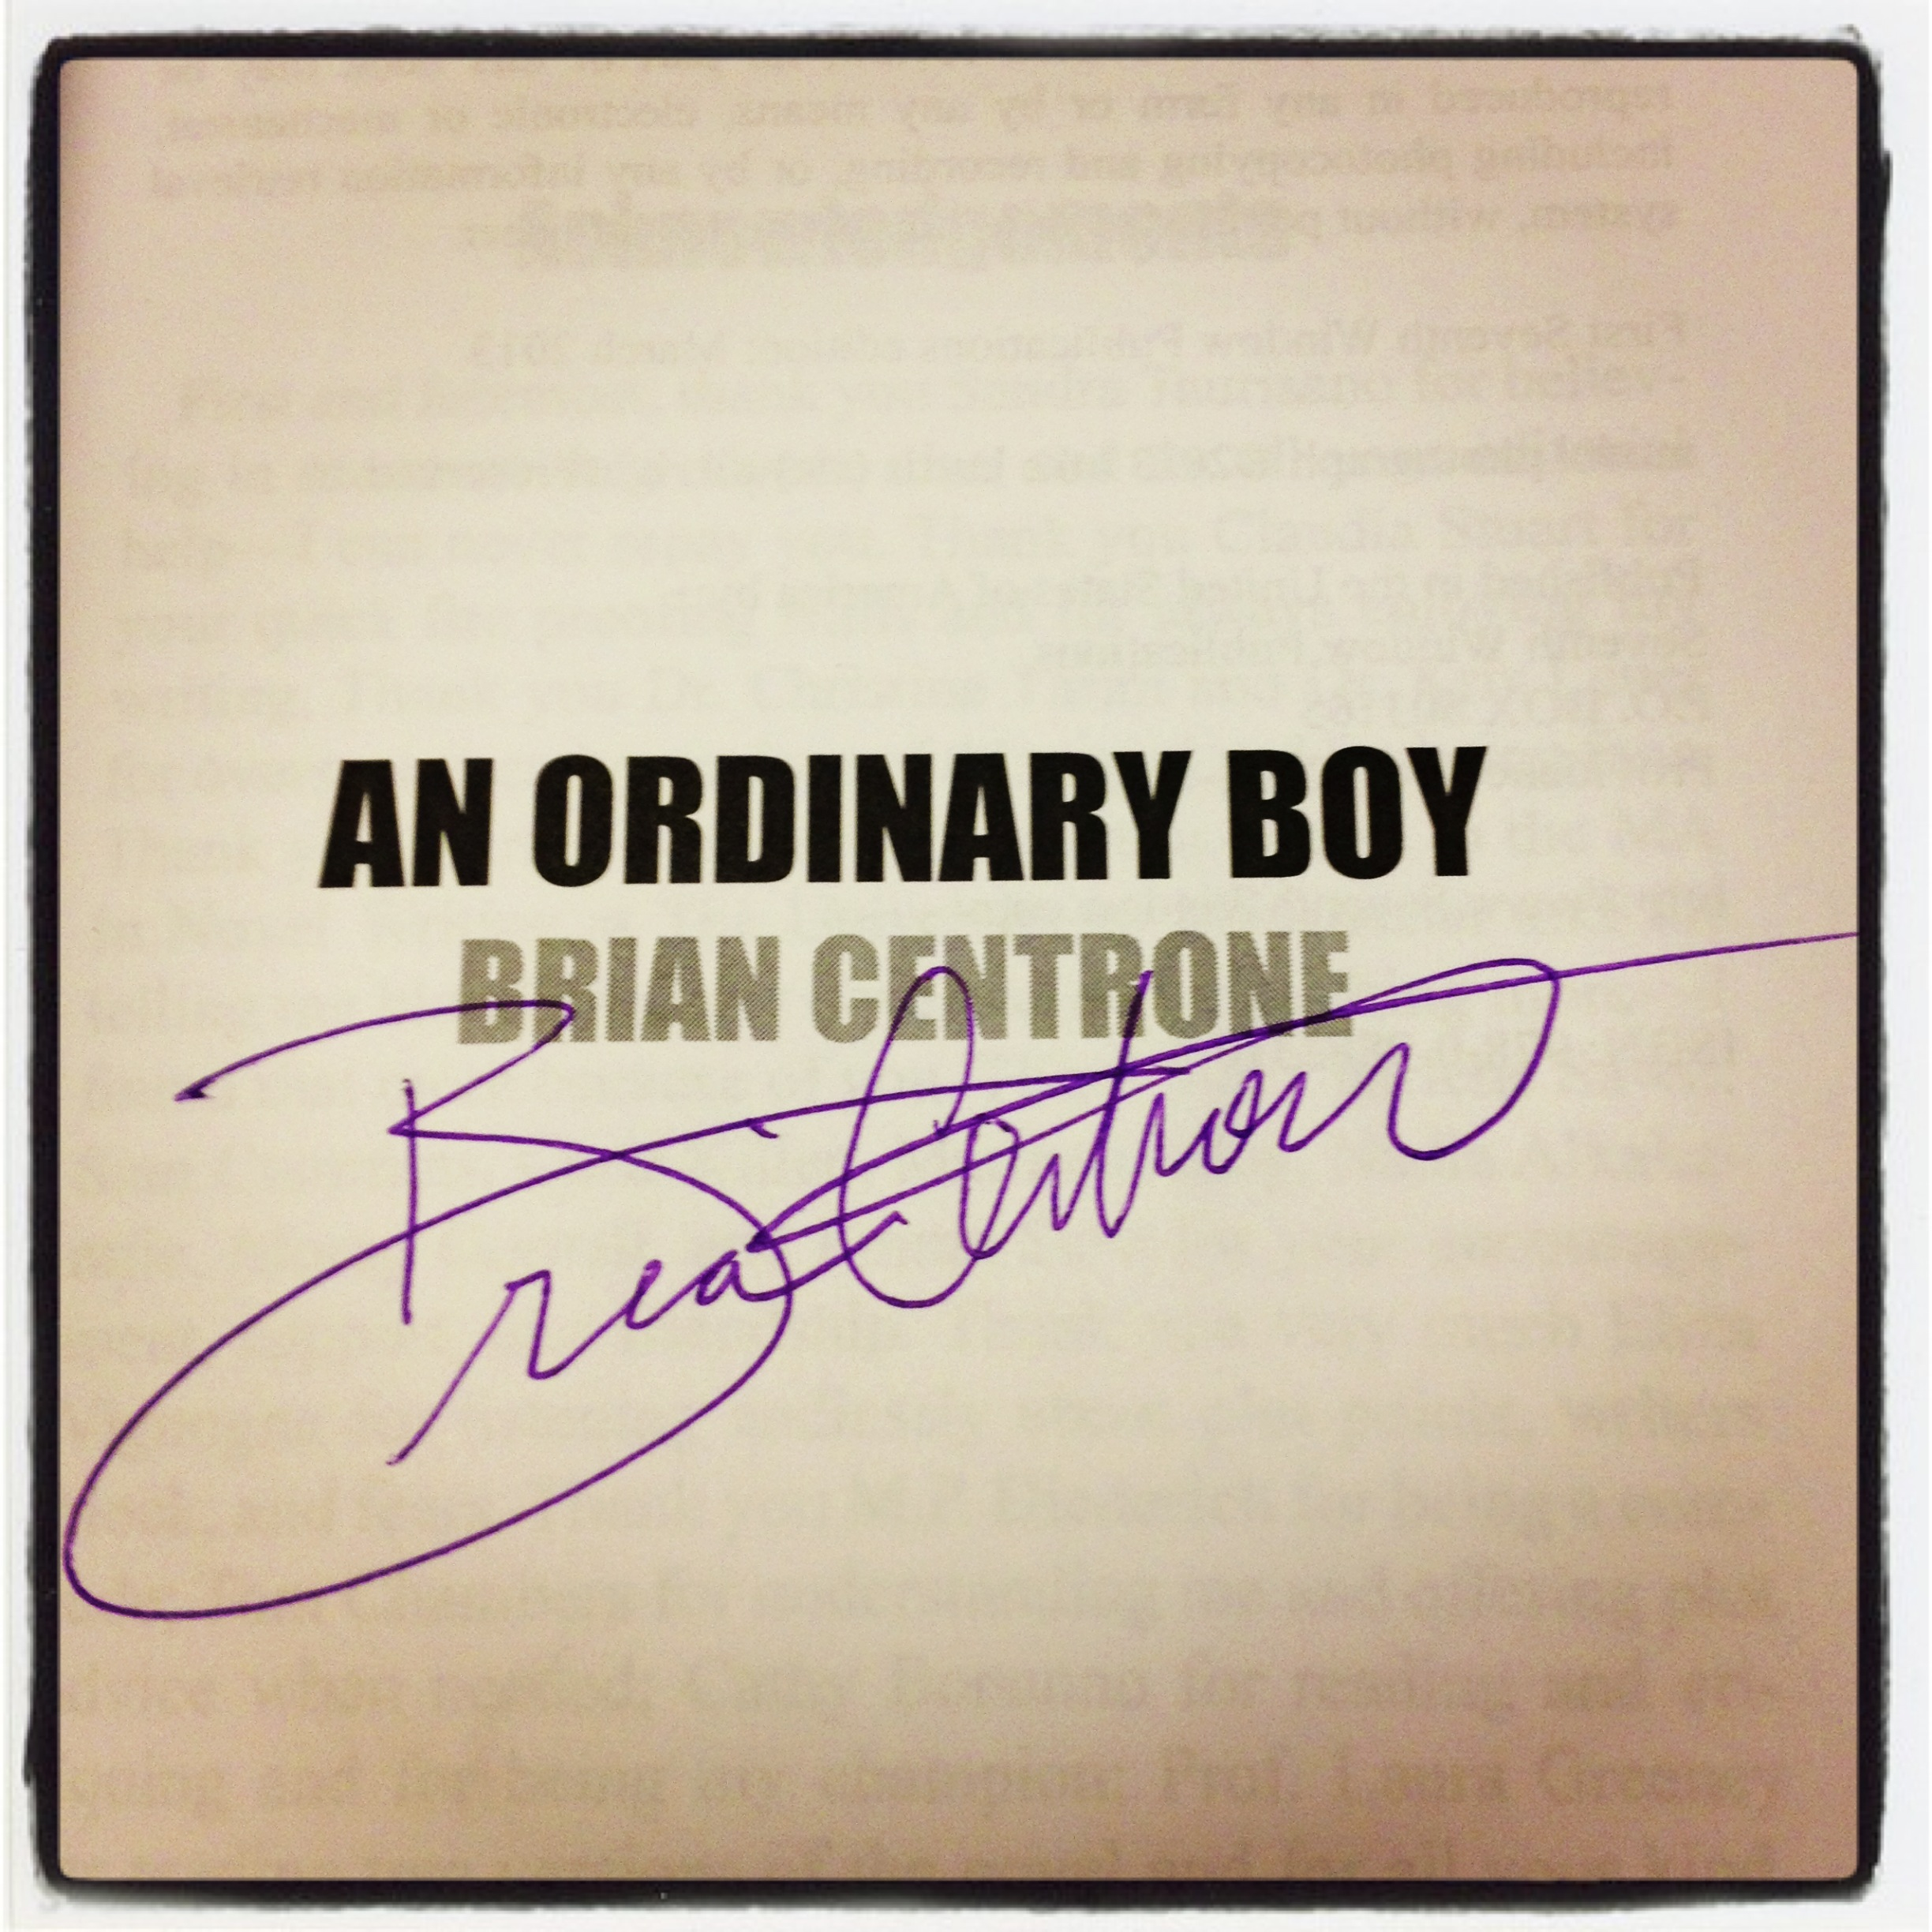 Signed Copy of An Ordinary Boy